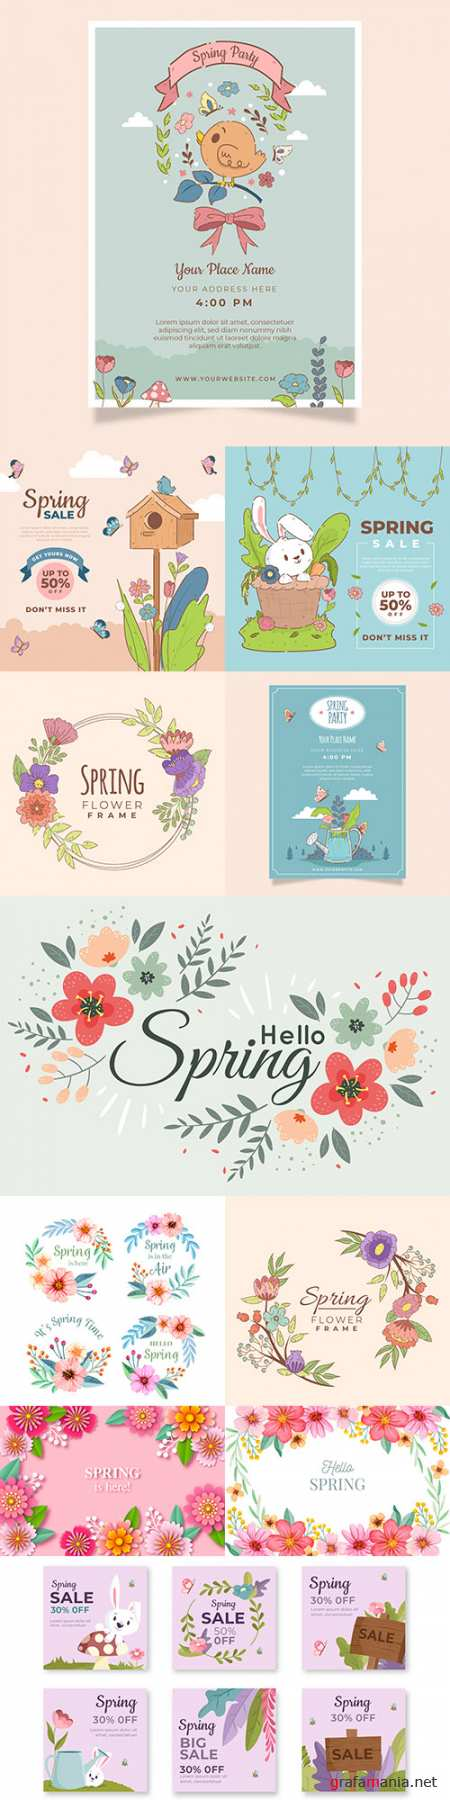 Hello spring floral decorative painted background 2